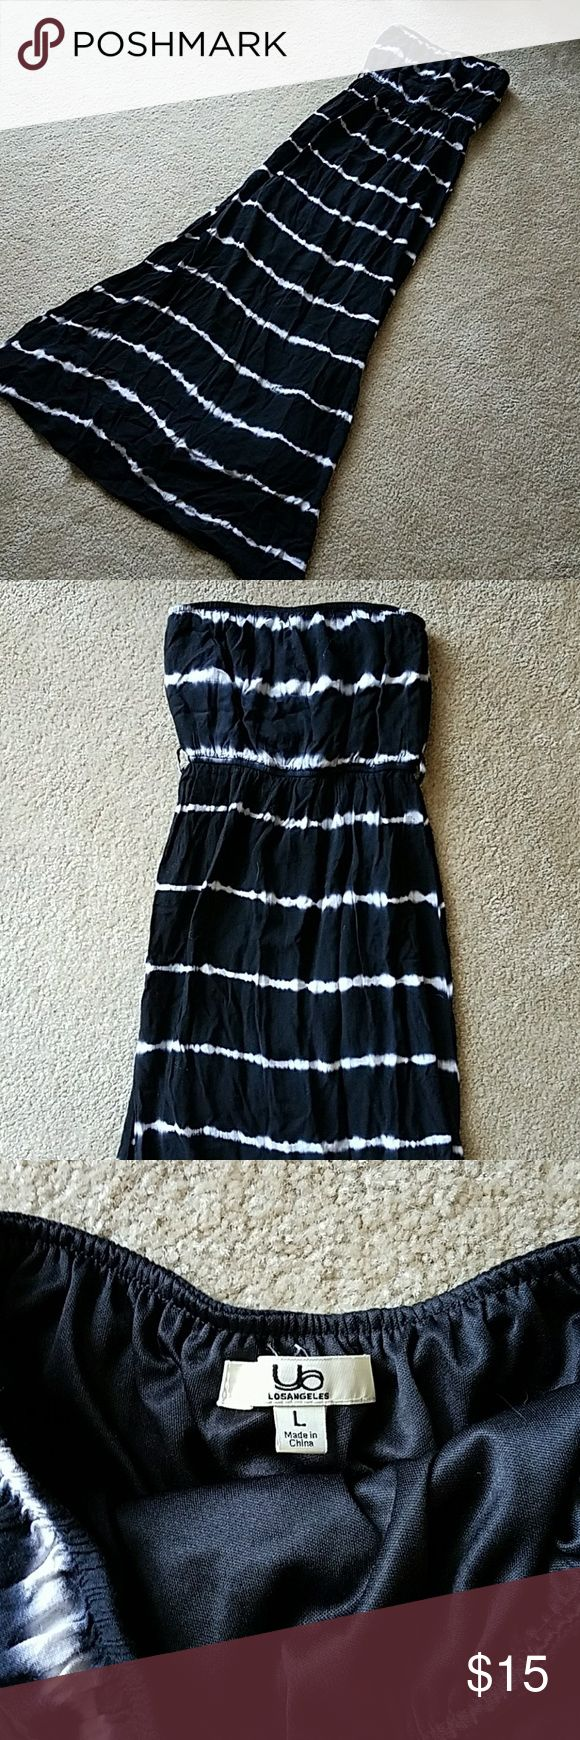 Black and white long dress Strapless dress from LA. Lined half way to the ground. Elastic waist for definition. Dresses Strapless